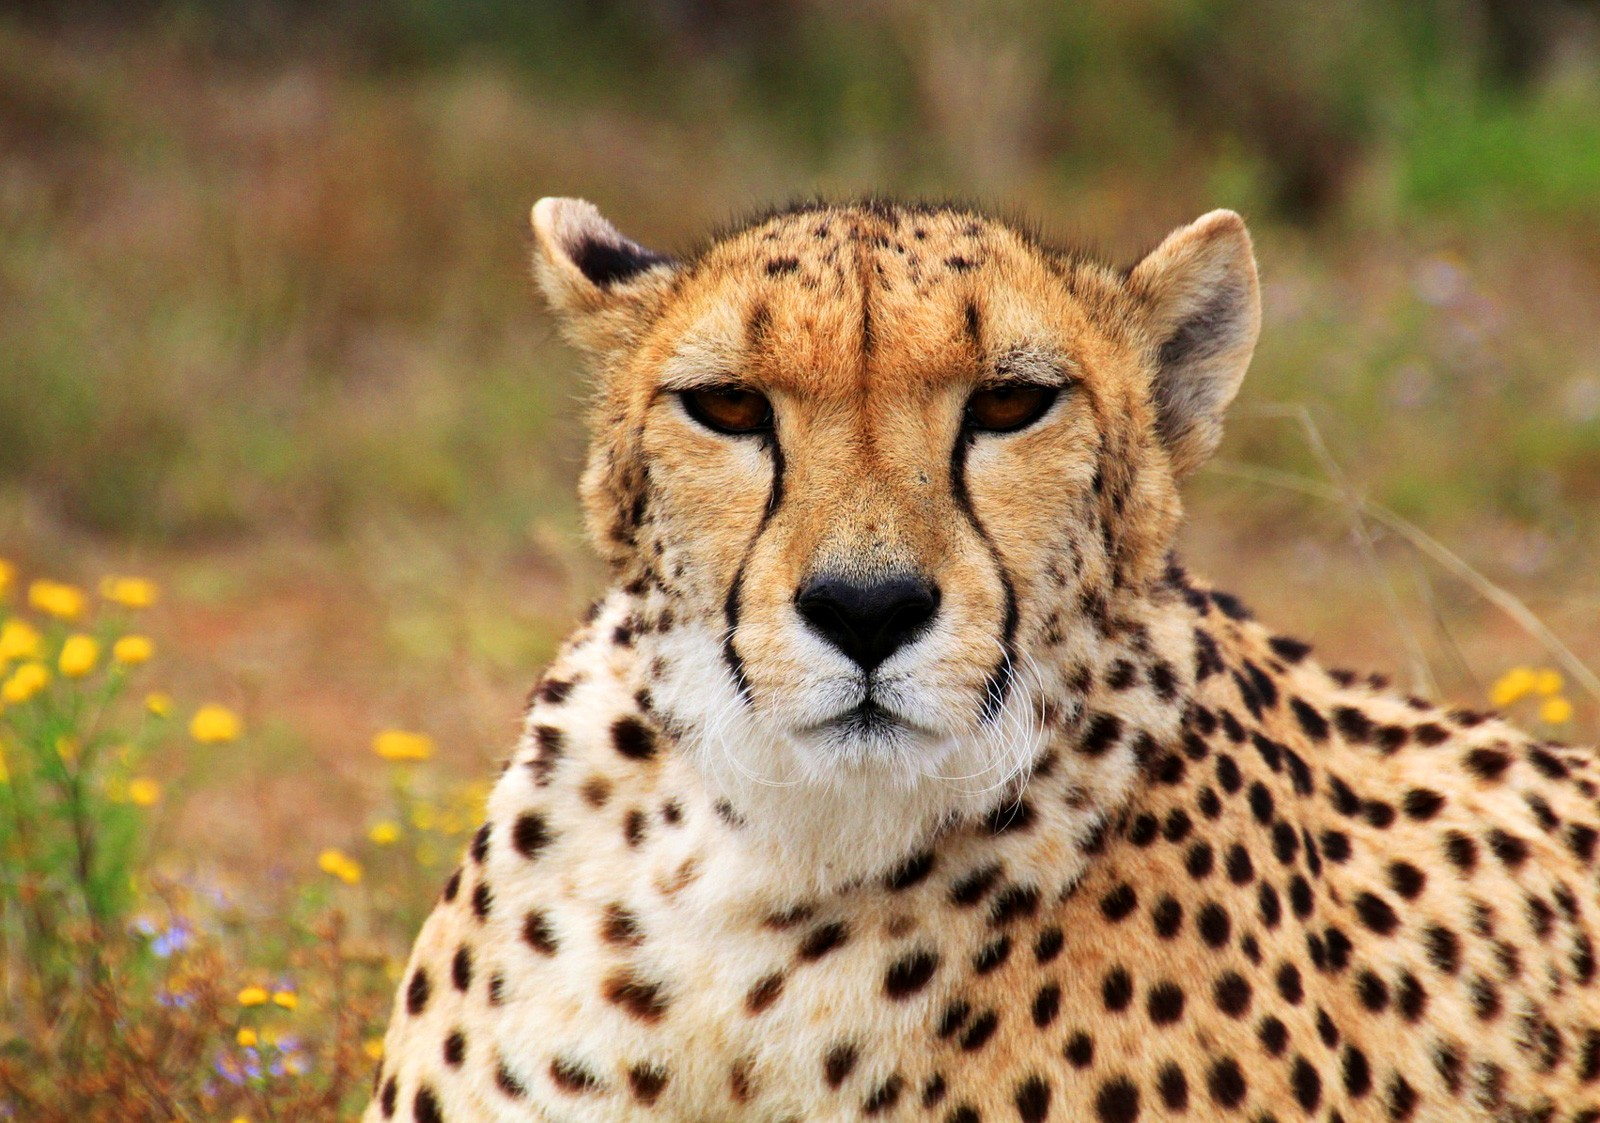 Symbolic Cheetah Characteristics On Whats Your Sign